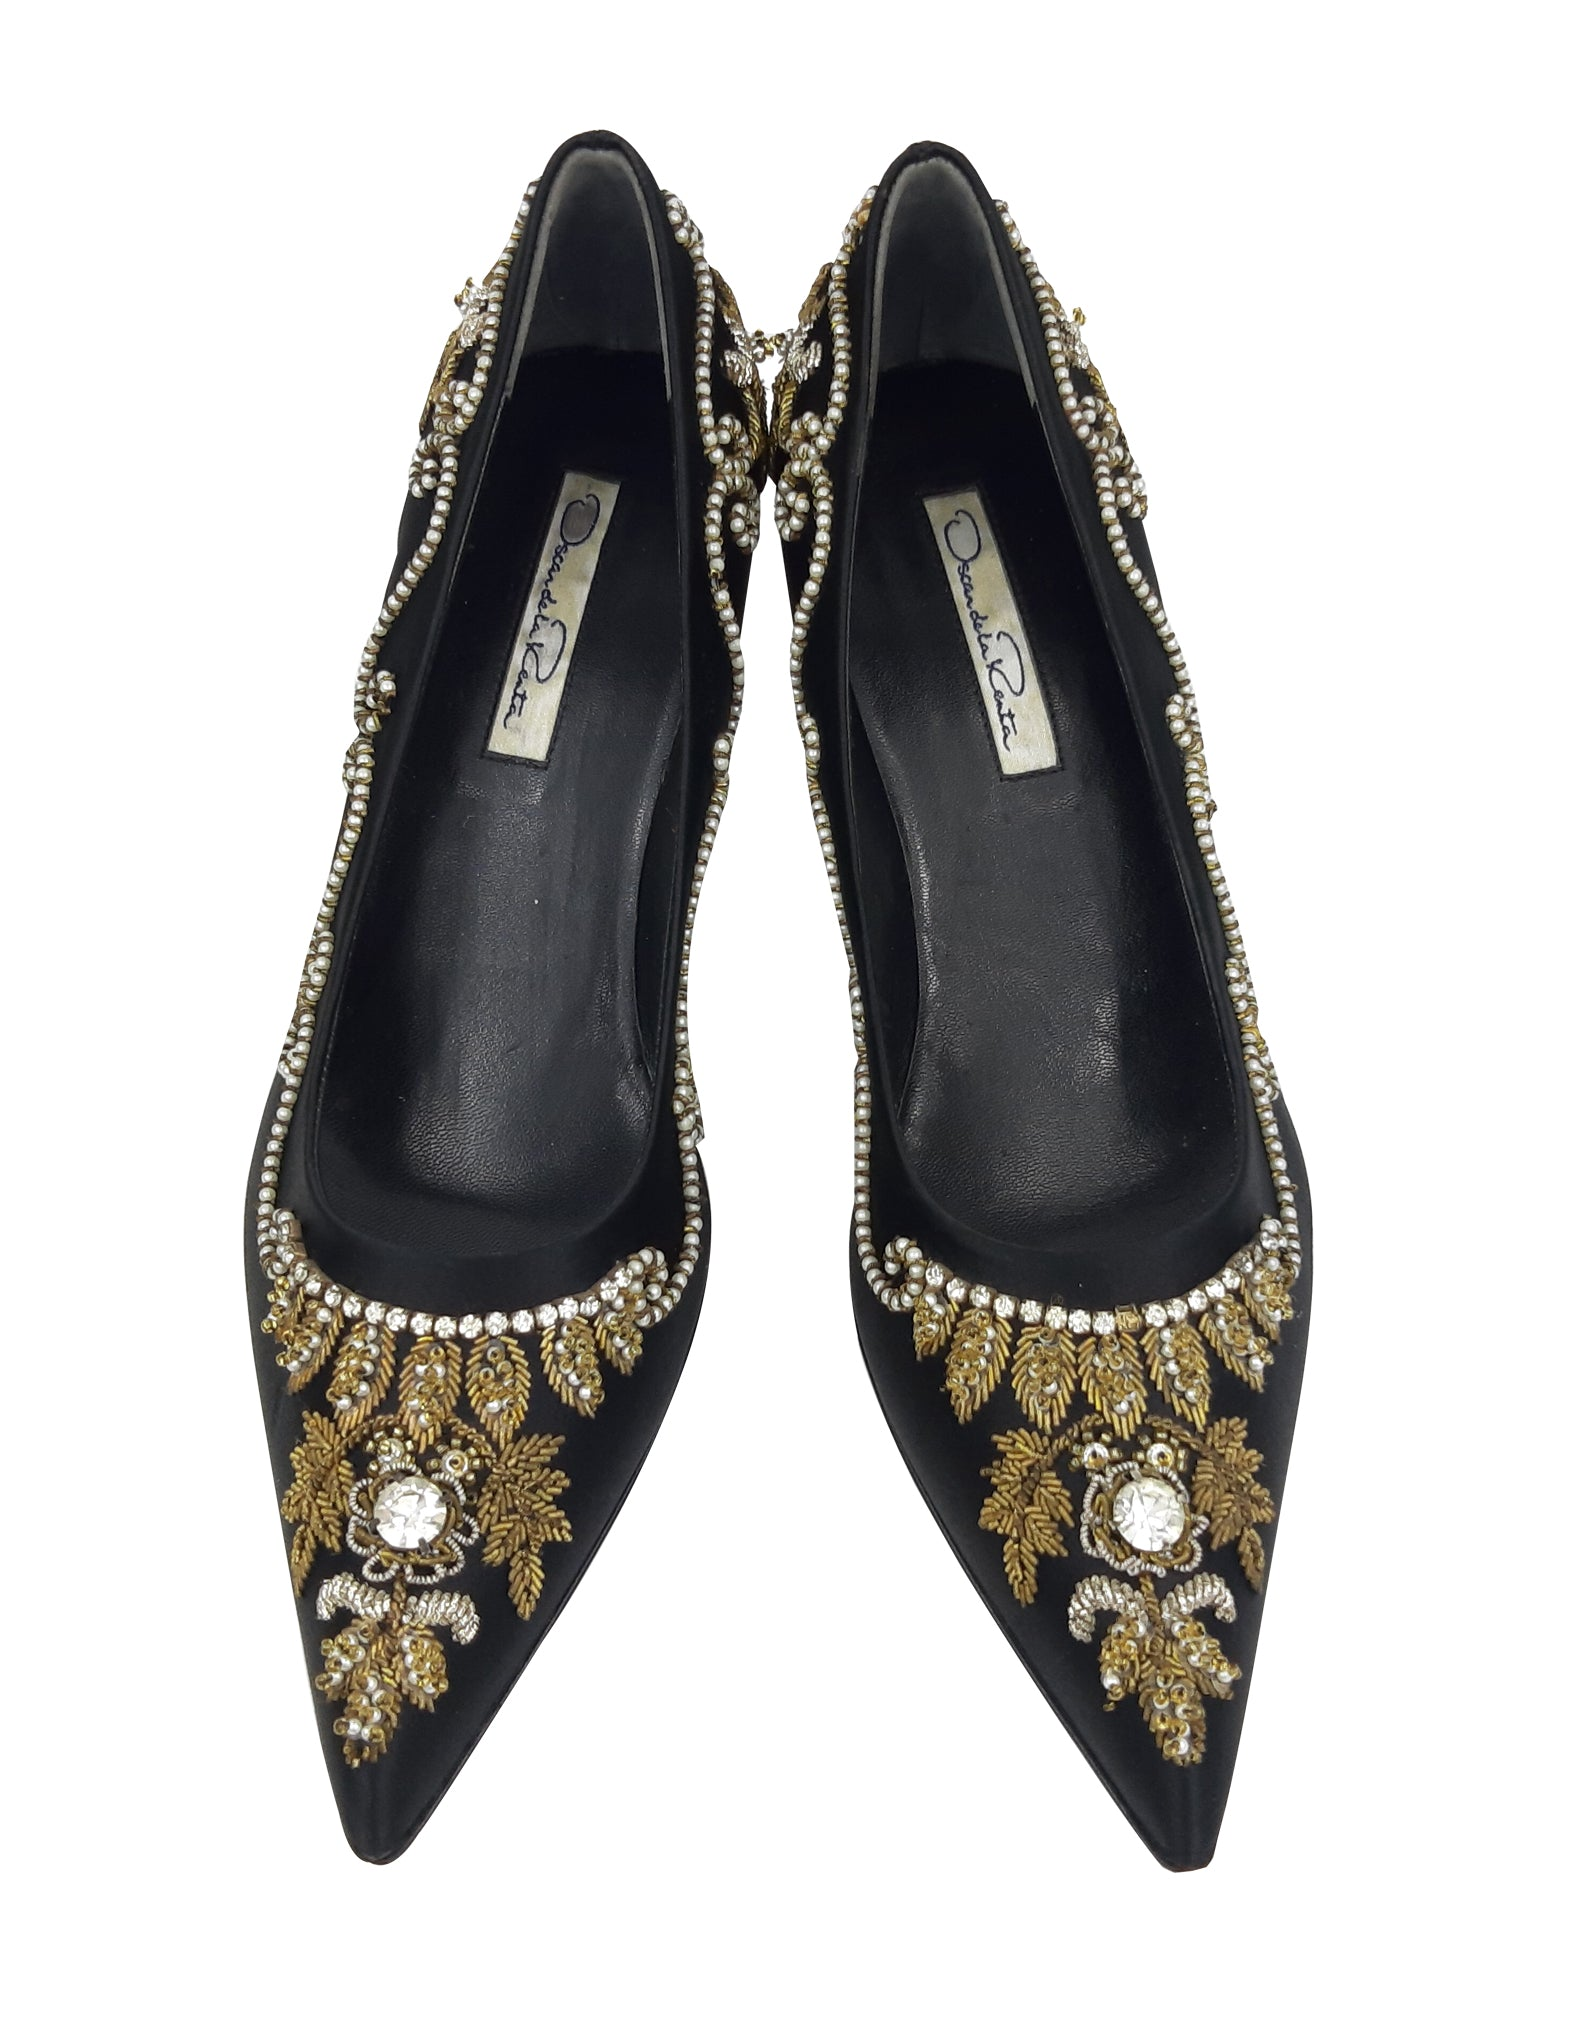 Oscar de La Renta Black Heeled Shoes with Rhinestones and Beads Details  Size 37 (EU)